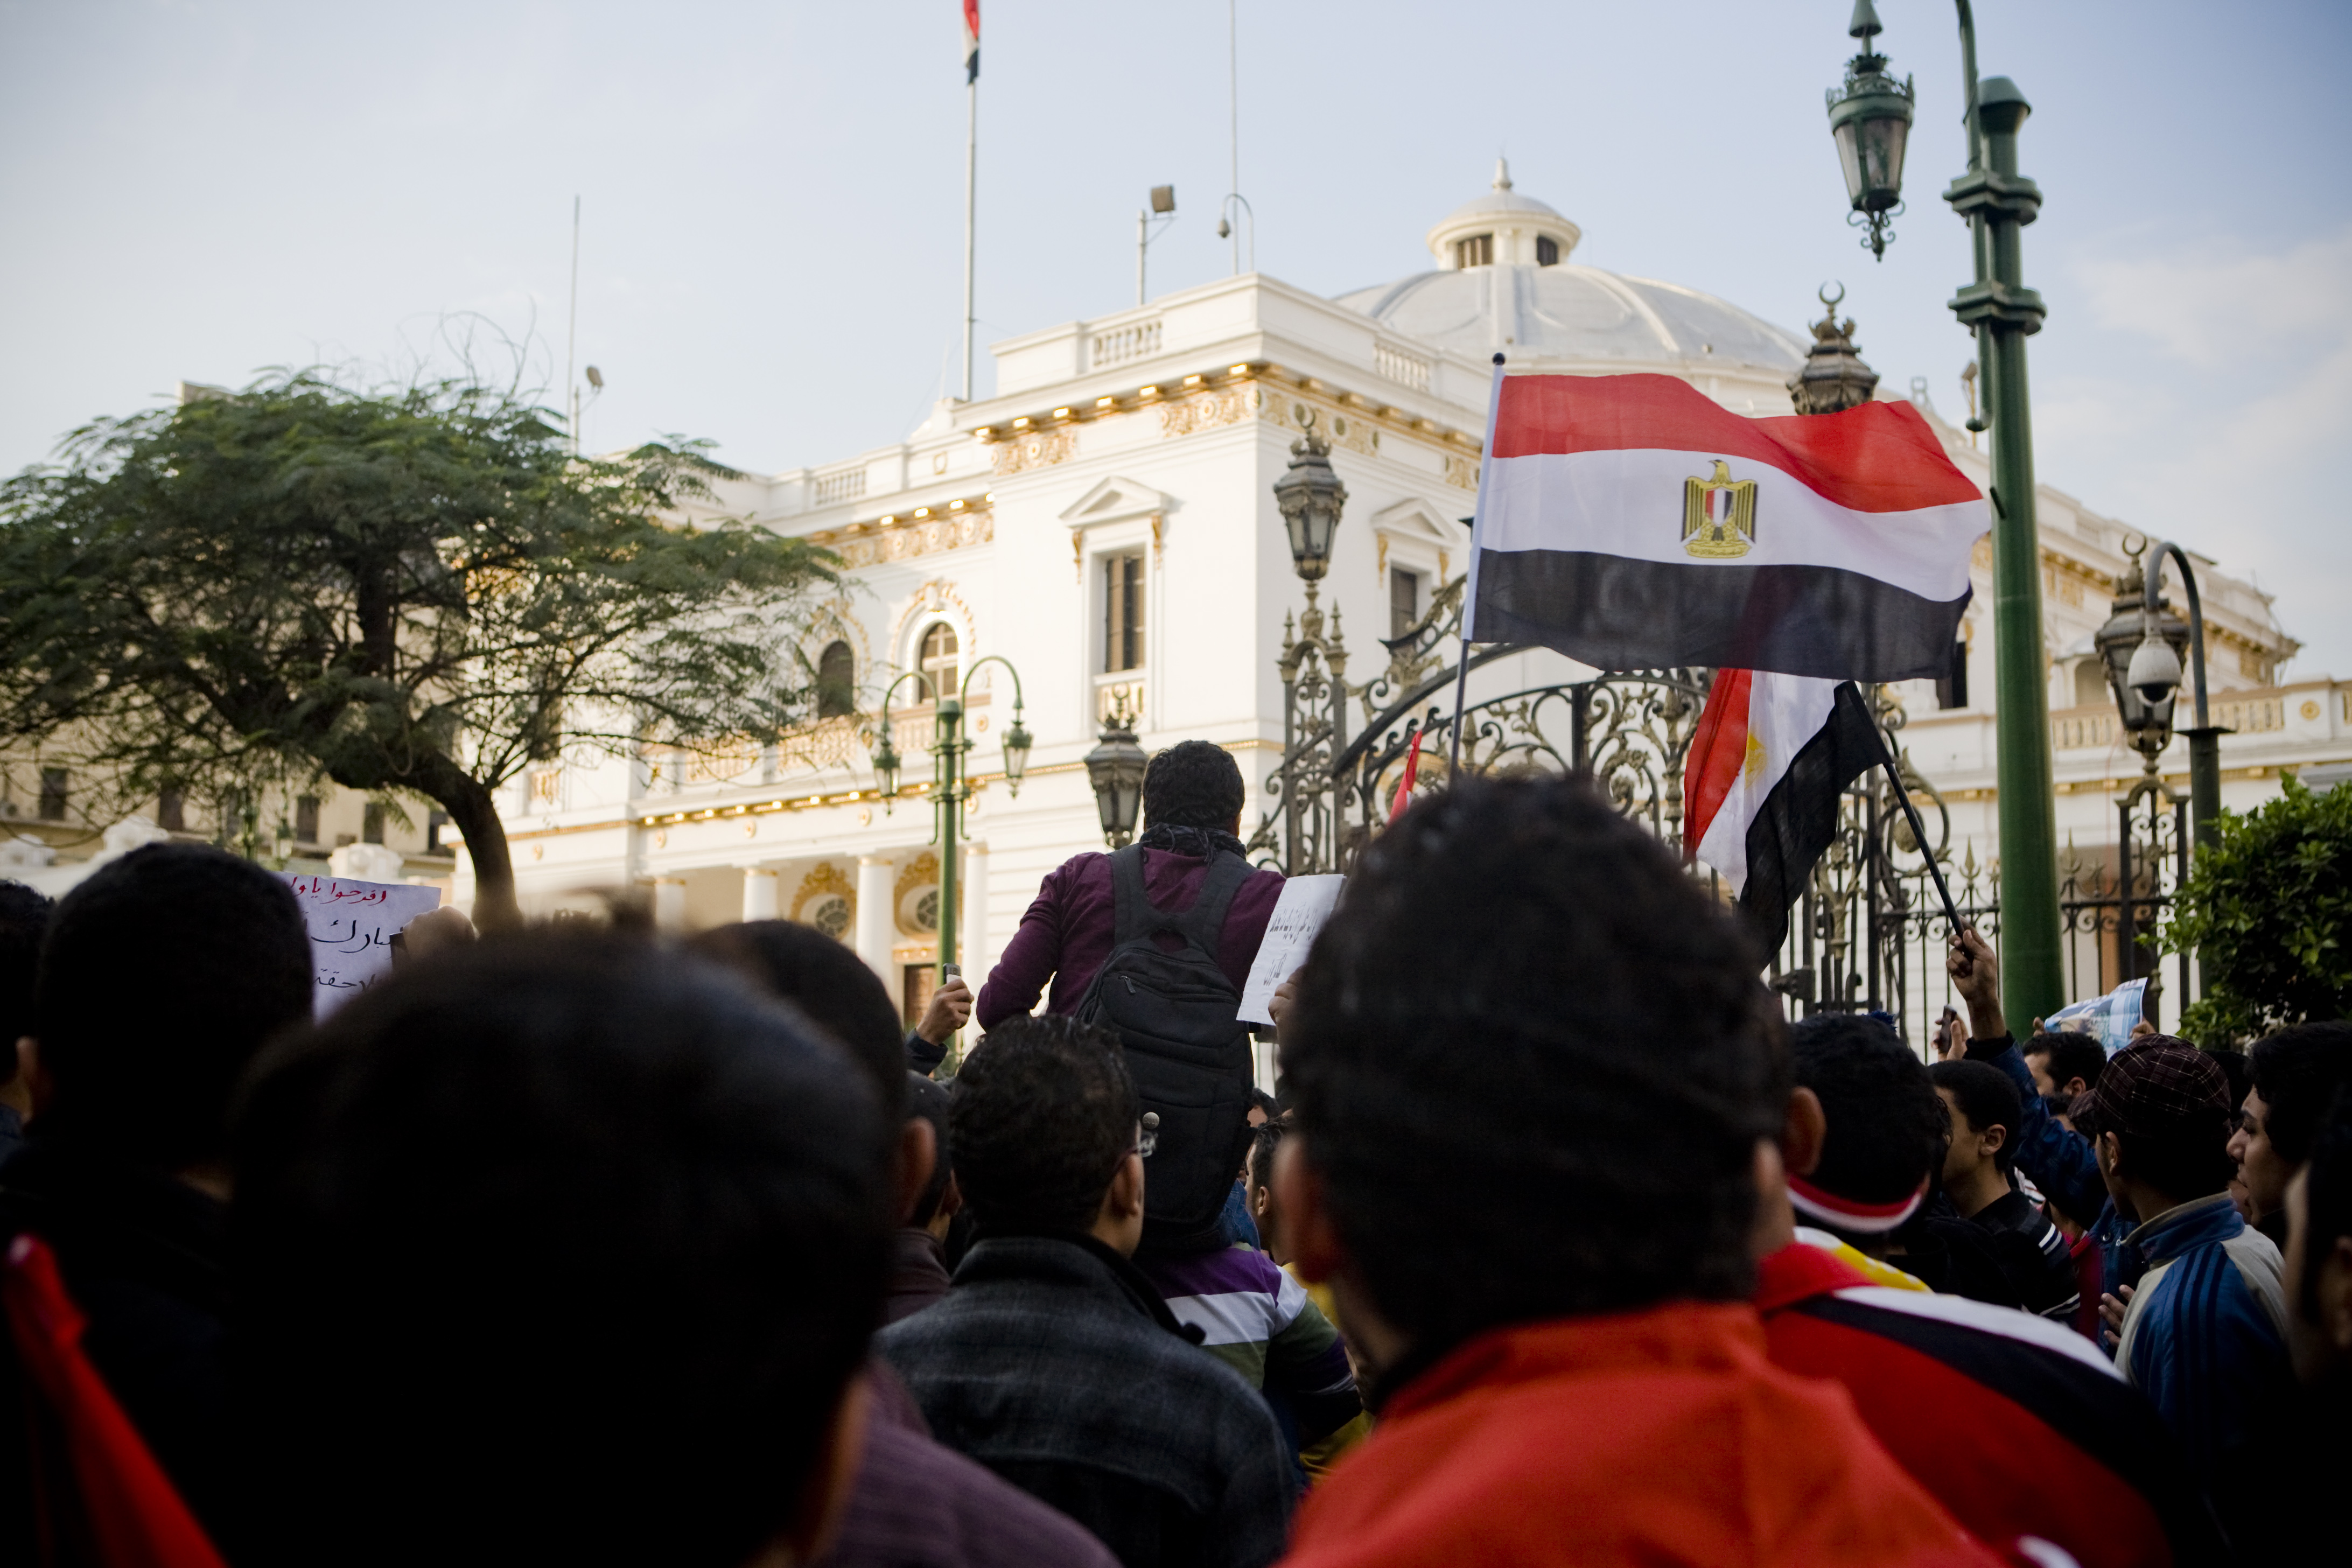 Protestors surround the Egyptian Parliament during the 2011 Revolution. Photo: Hossam El Hamalawy, via Flickr